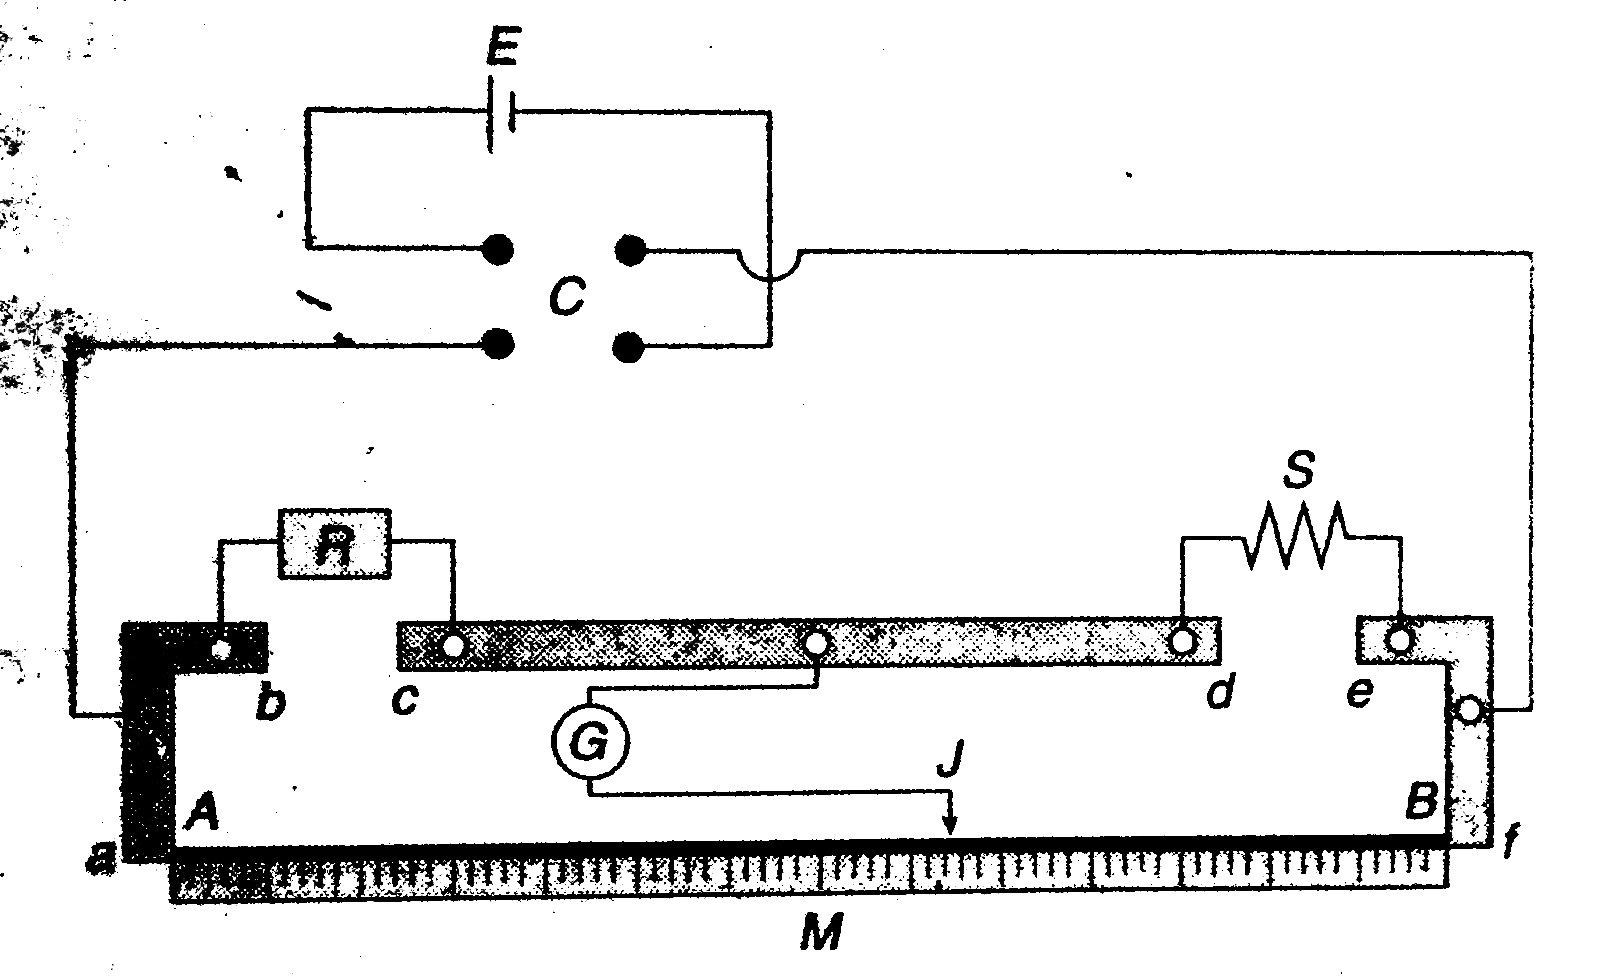 hight resolution of diagram of a school physics lab potentiometer used in measurement purpose